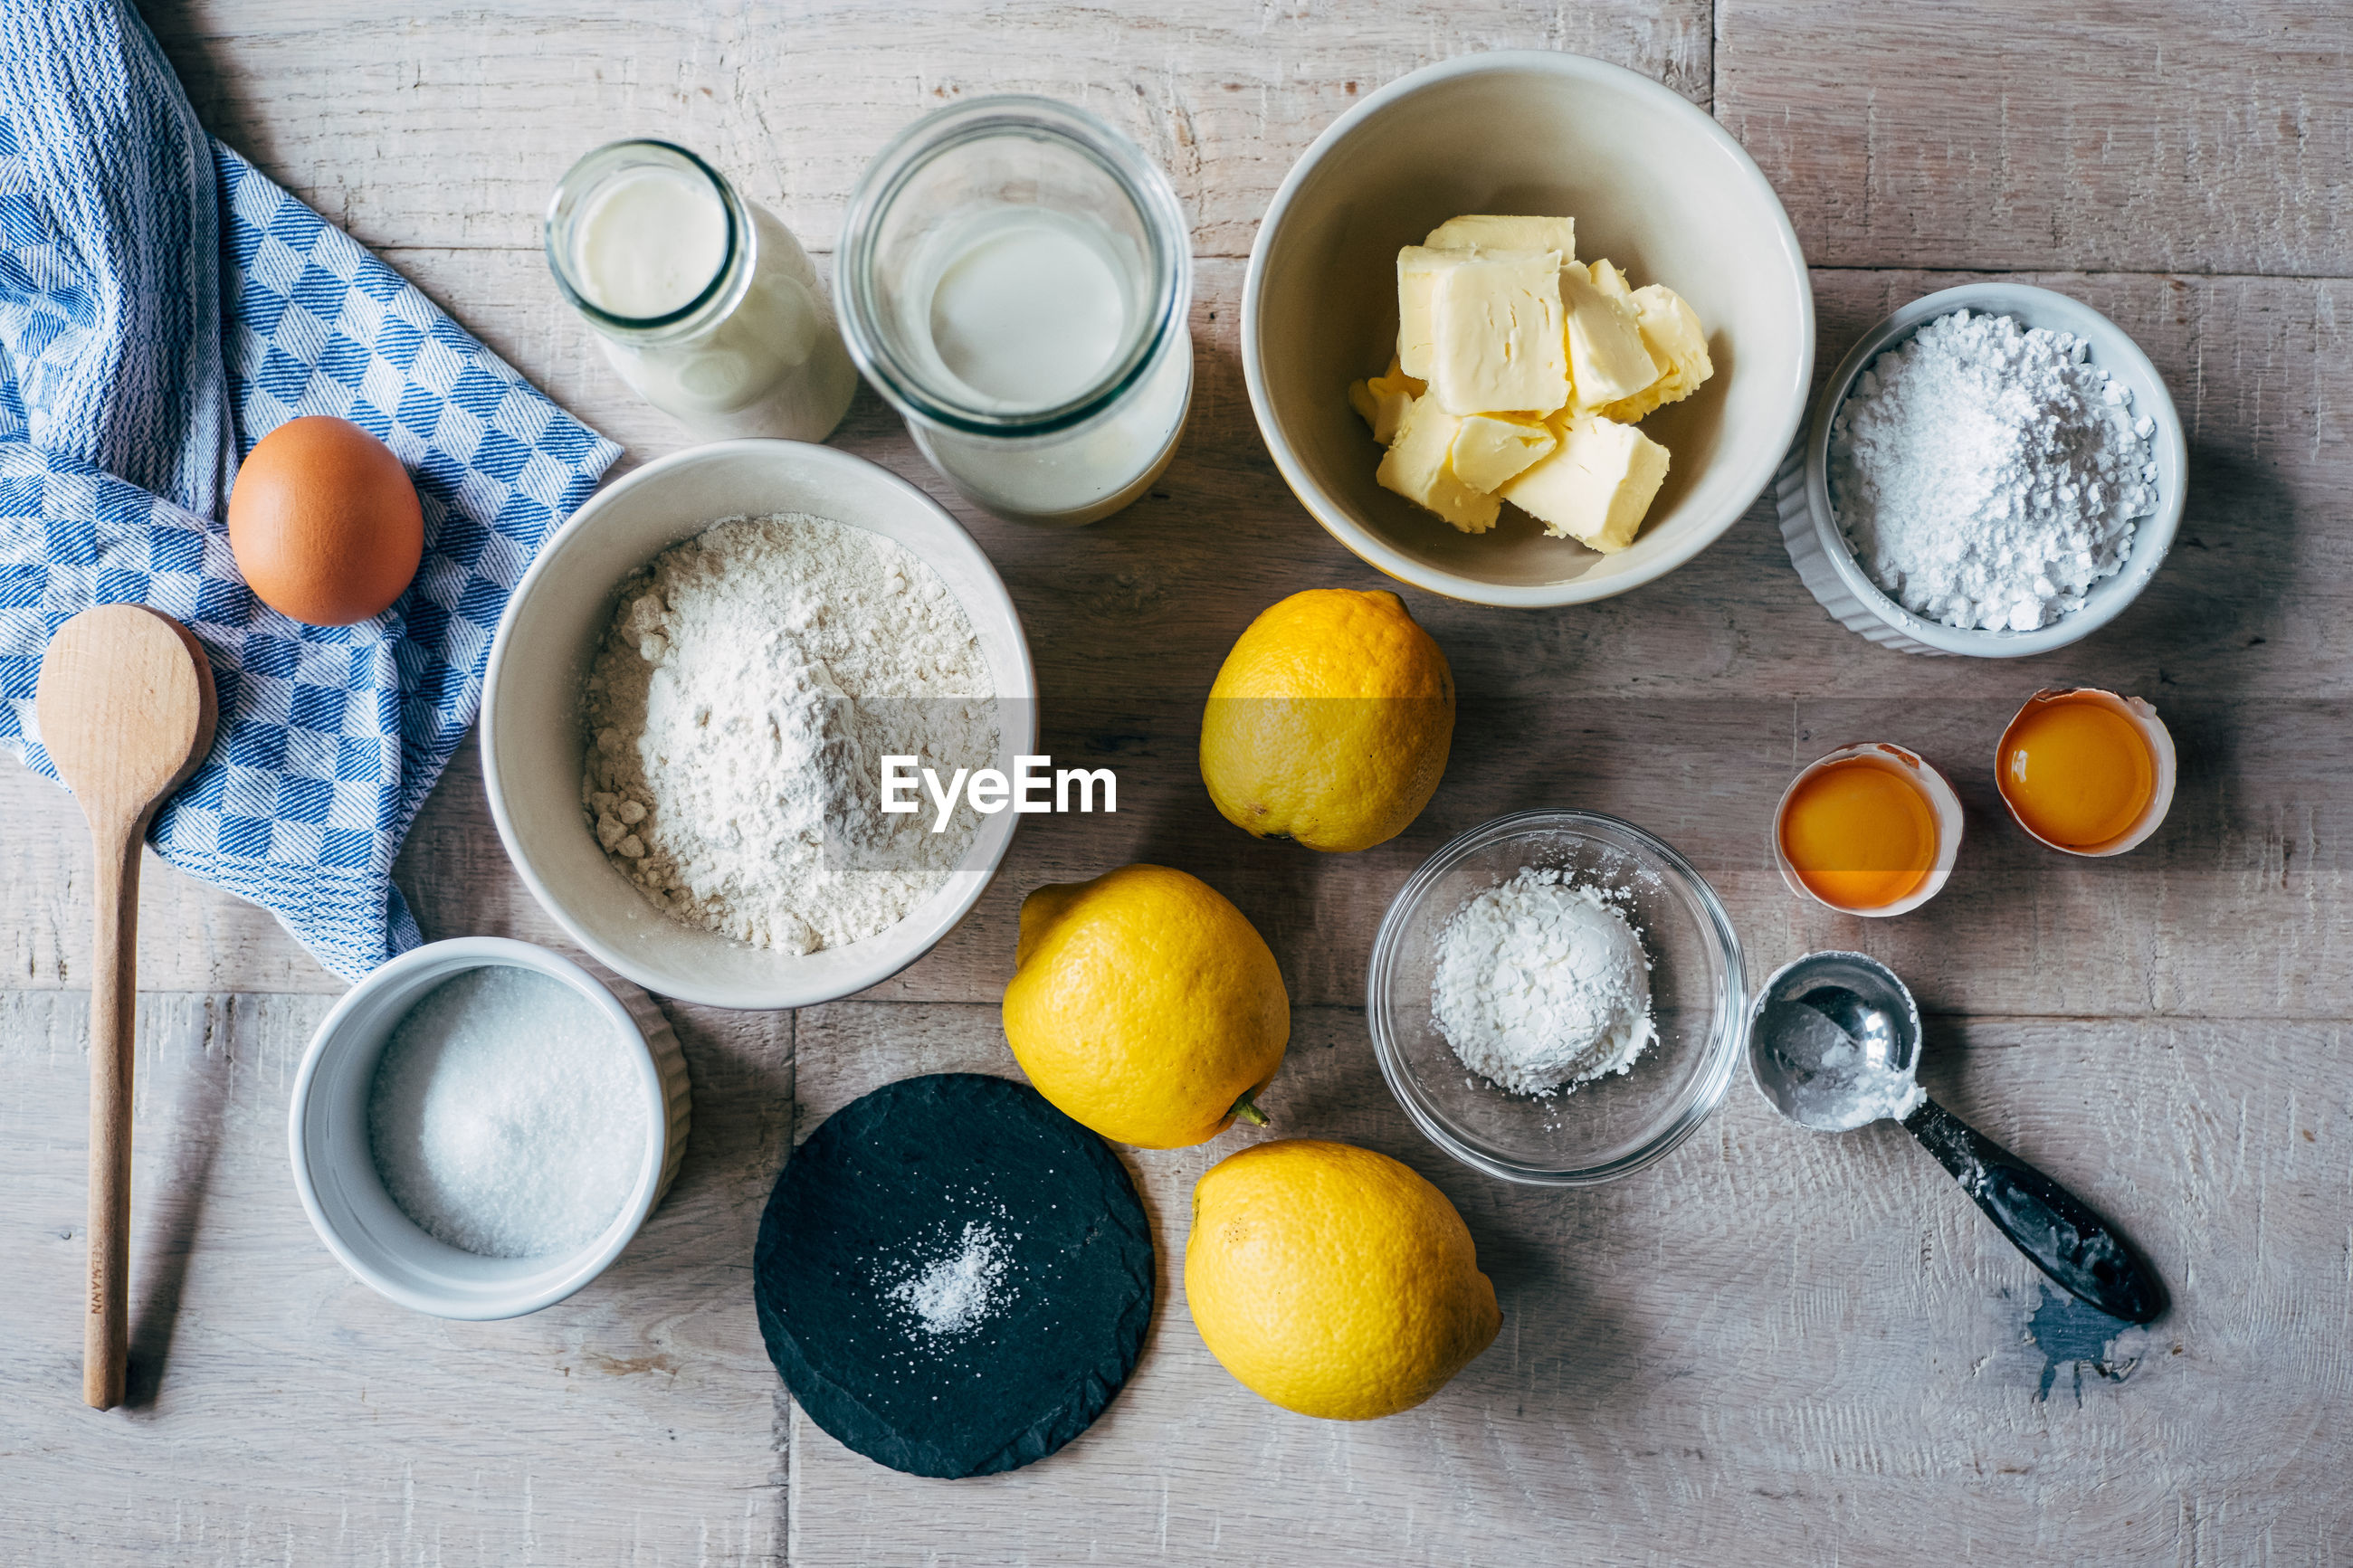 High angle view of baking ingredients  on table